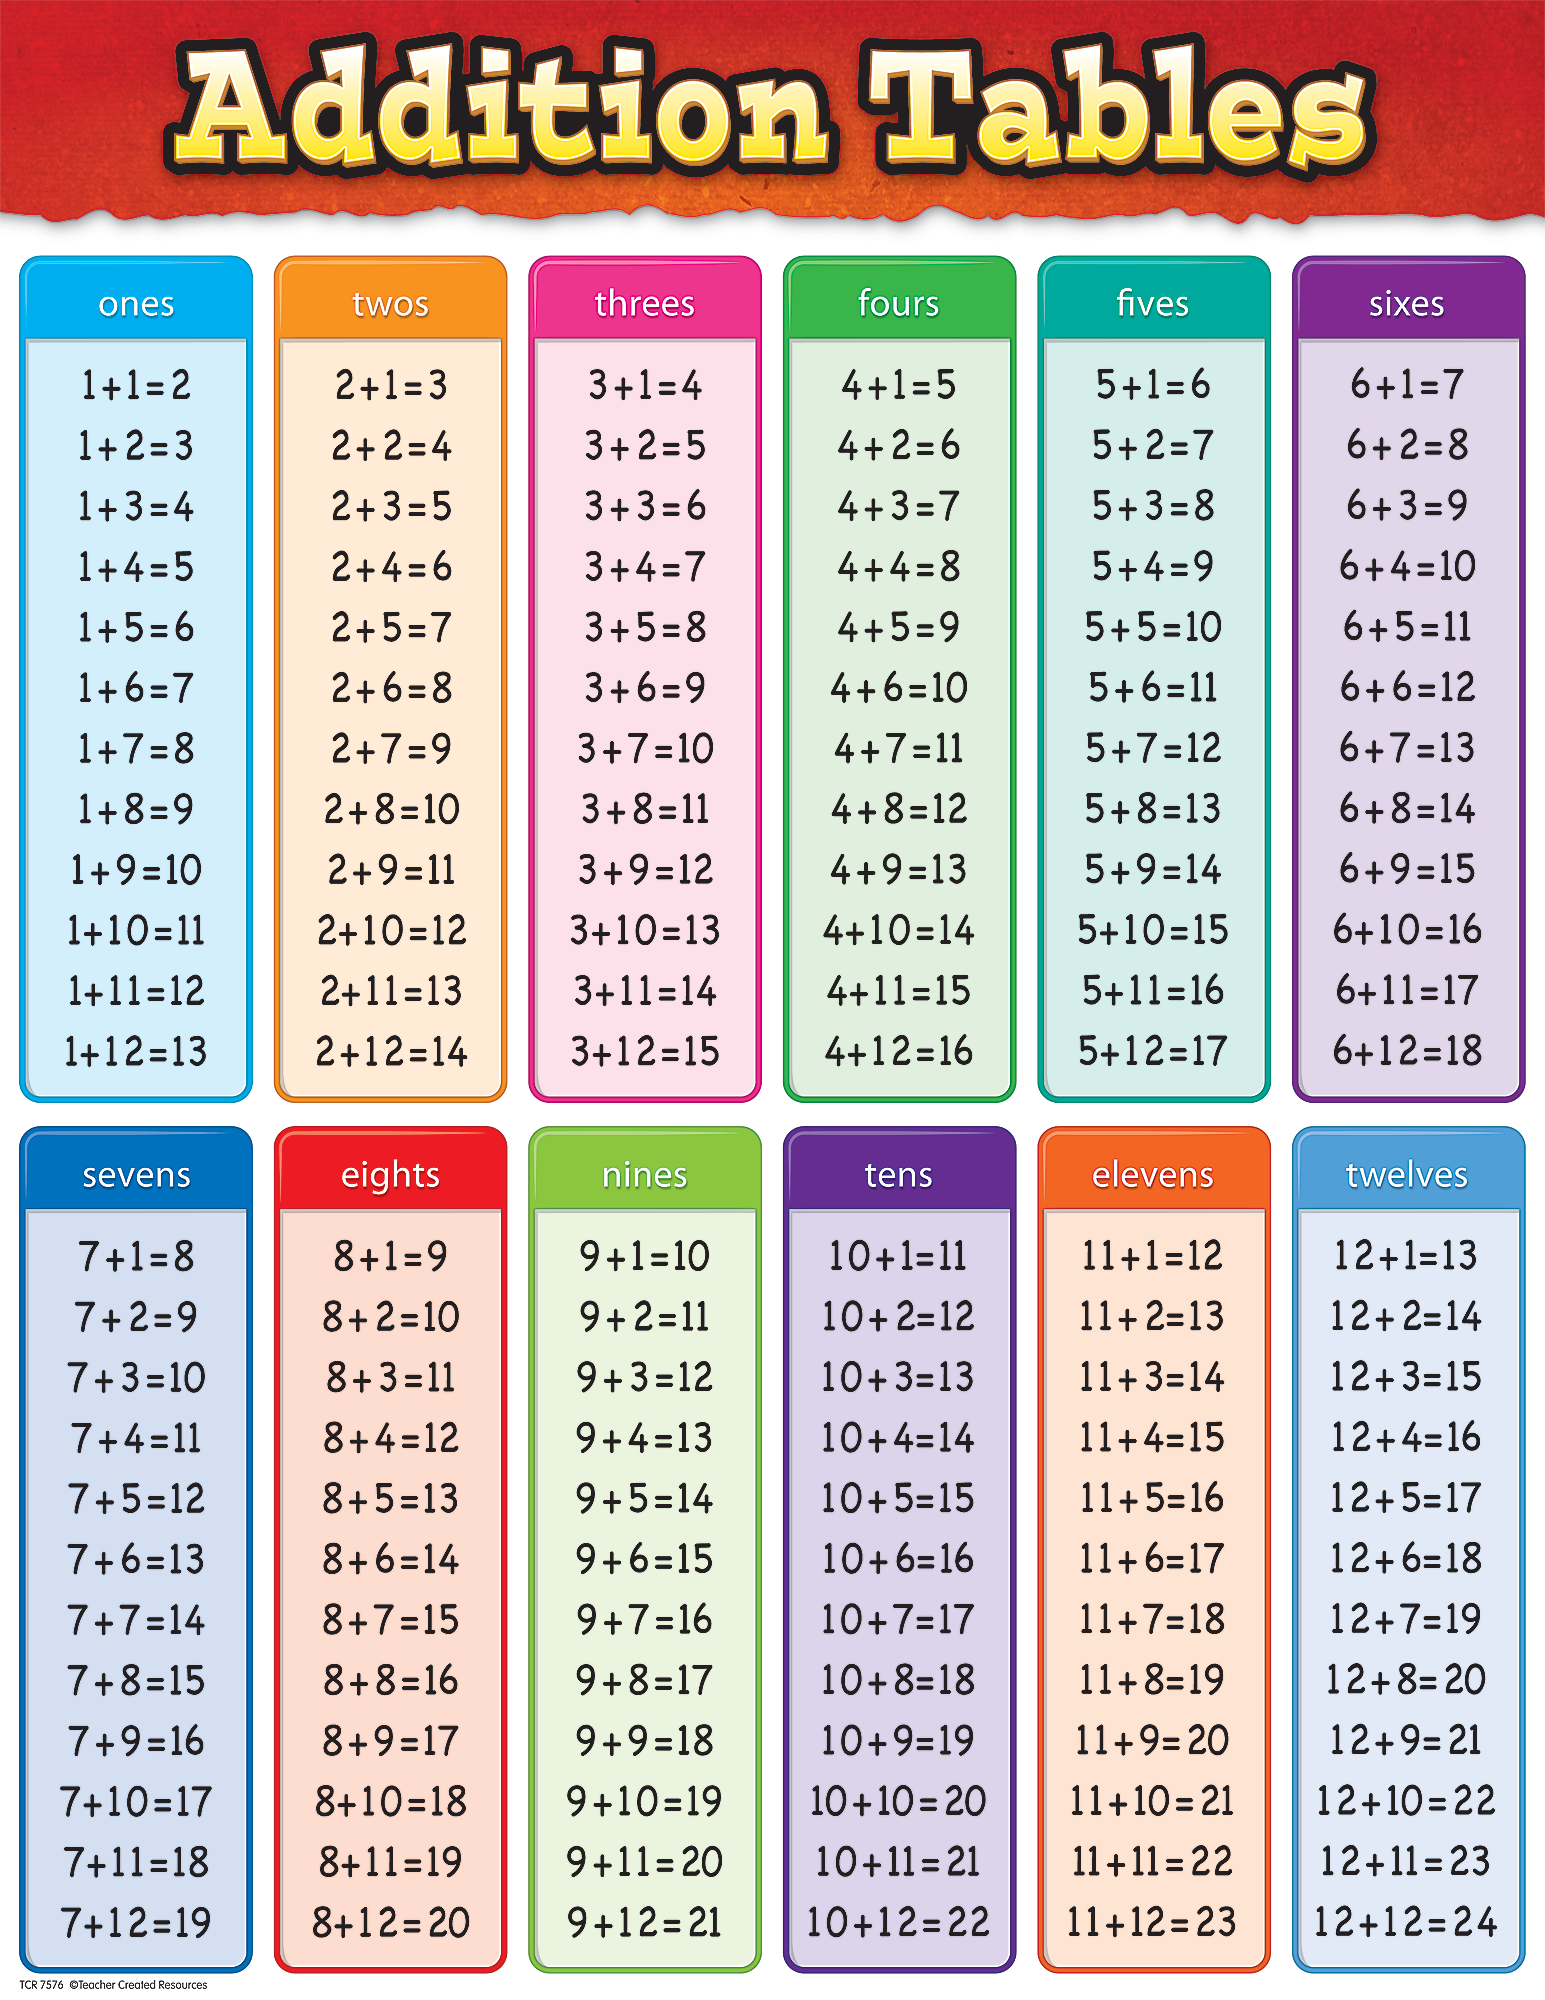 Addition Tables Chart - TCR7576 : Teacher Created Resources